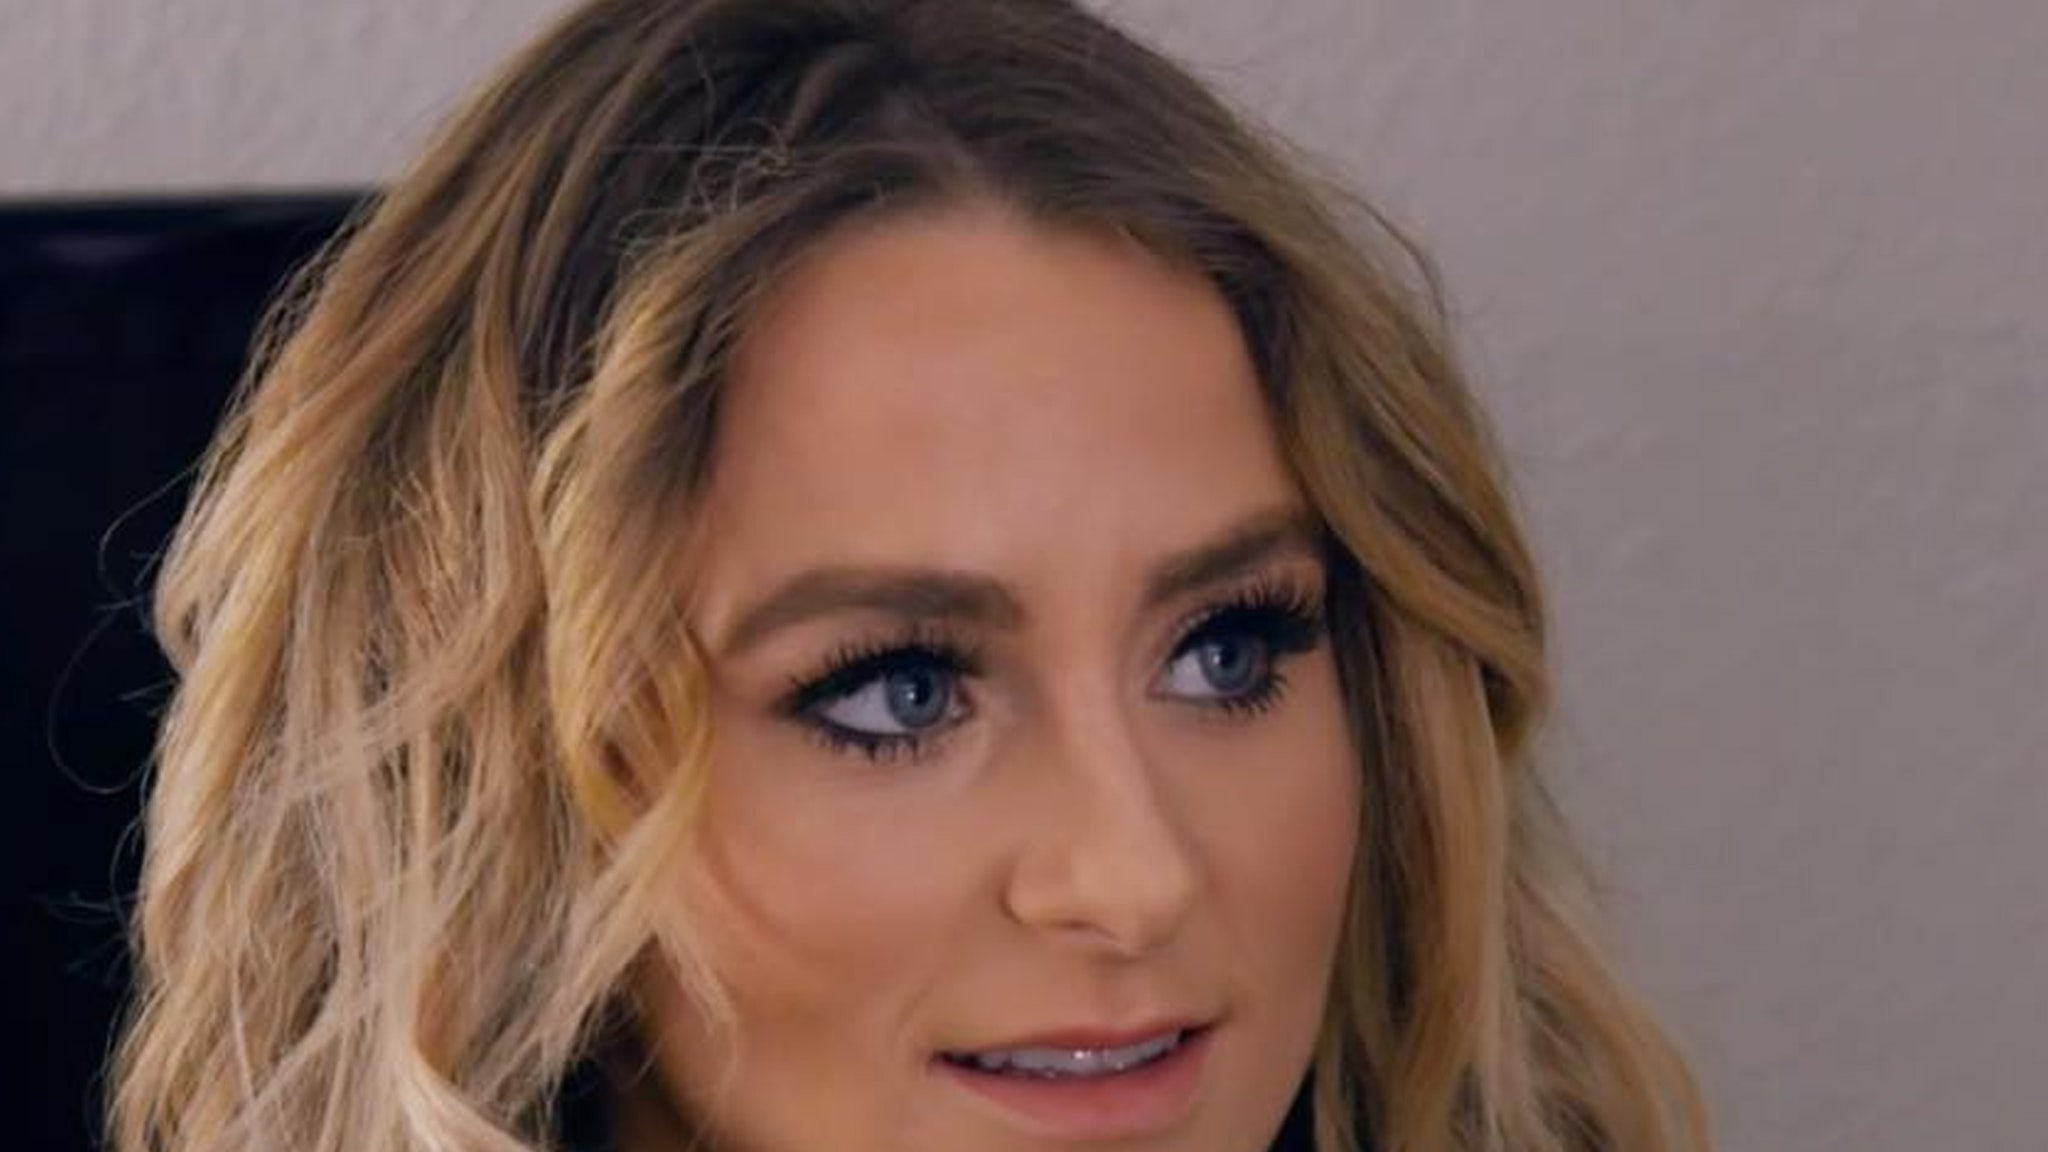 Teen Moms Leah Messer Says She First Had Sex at 13